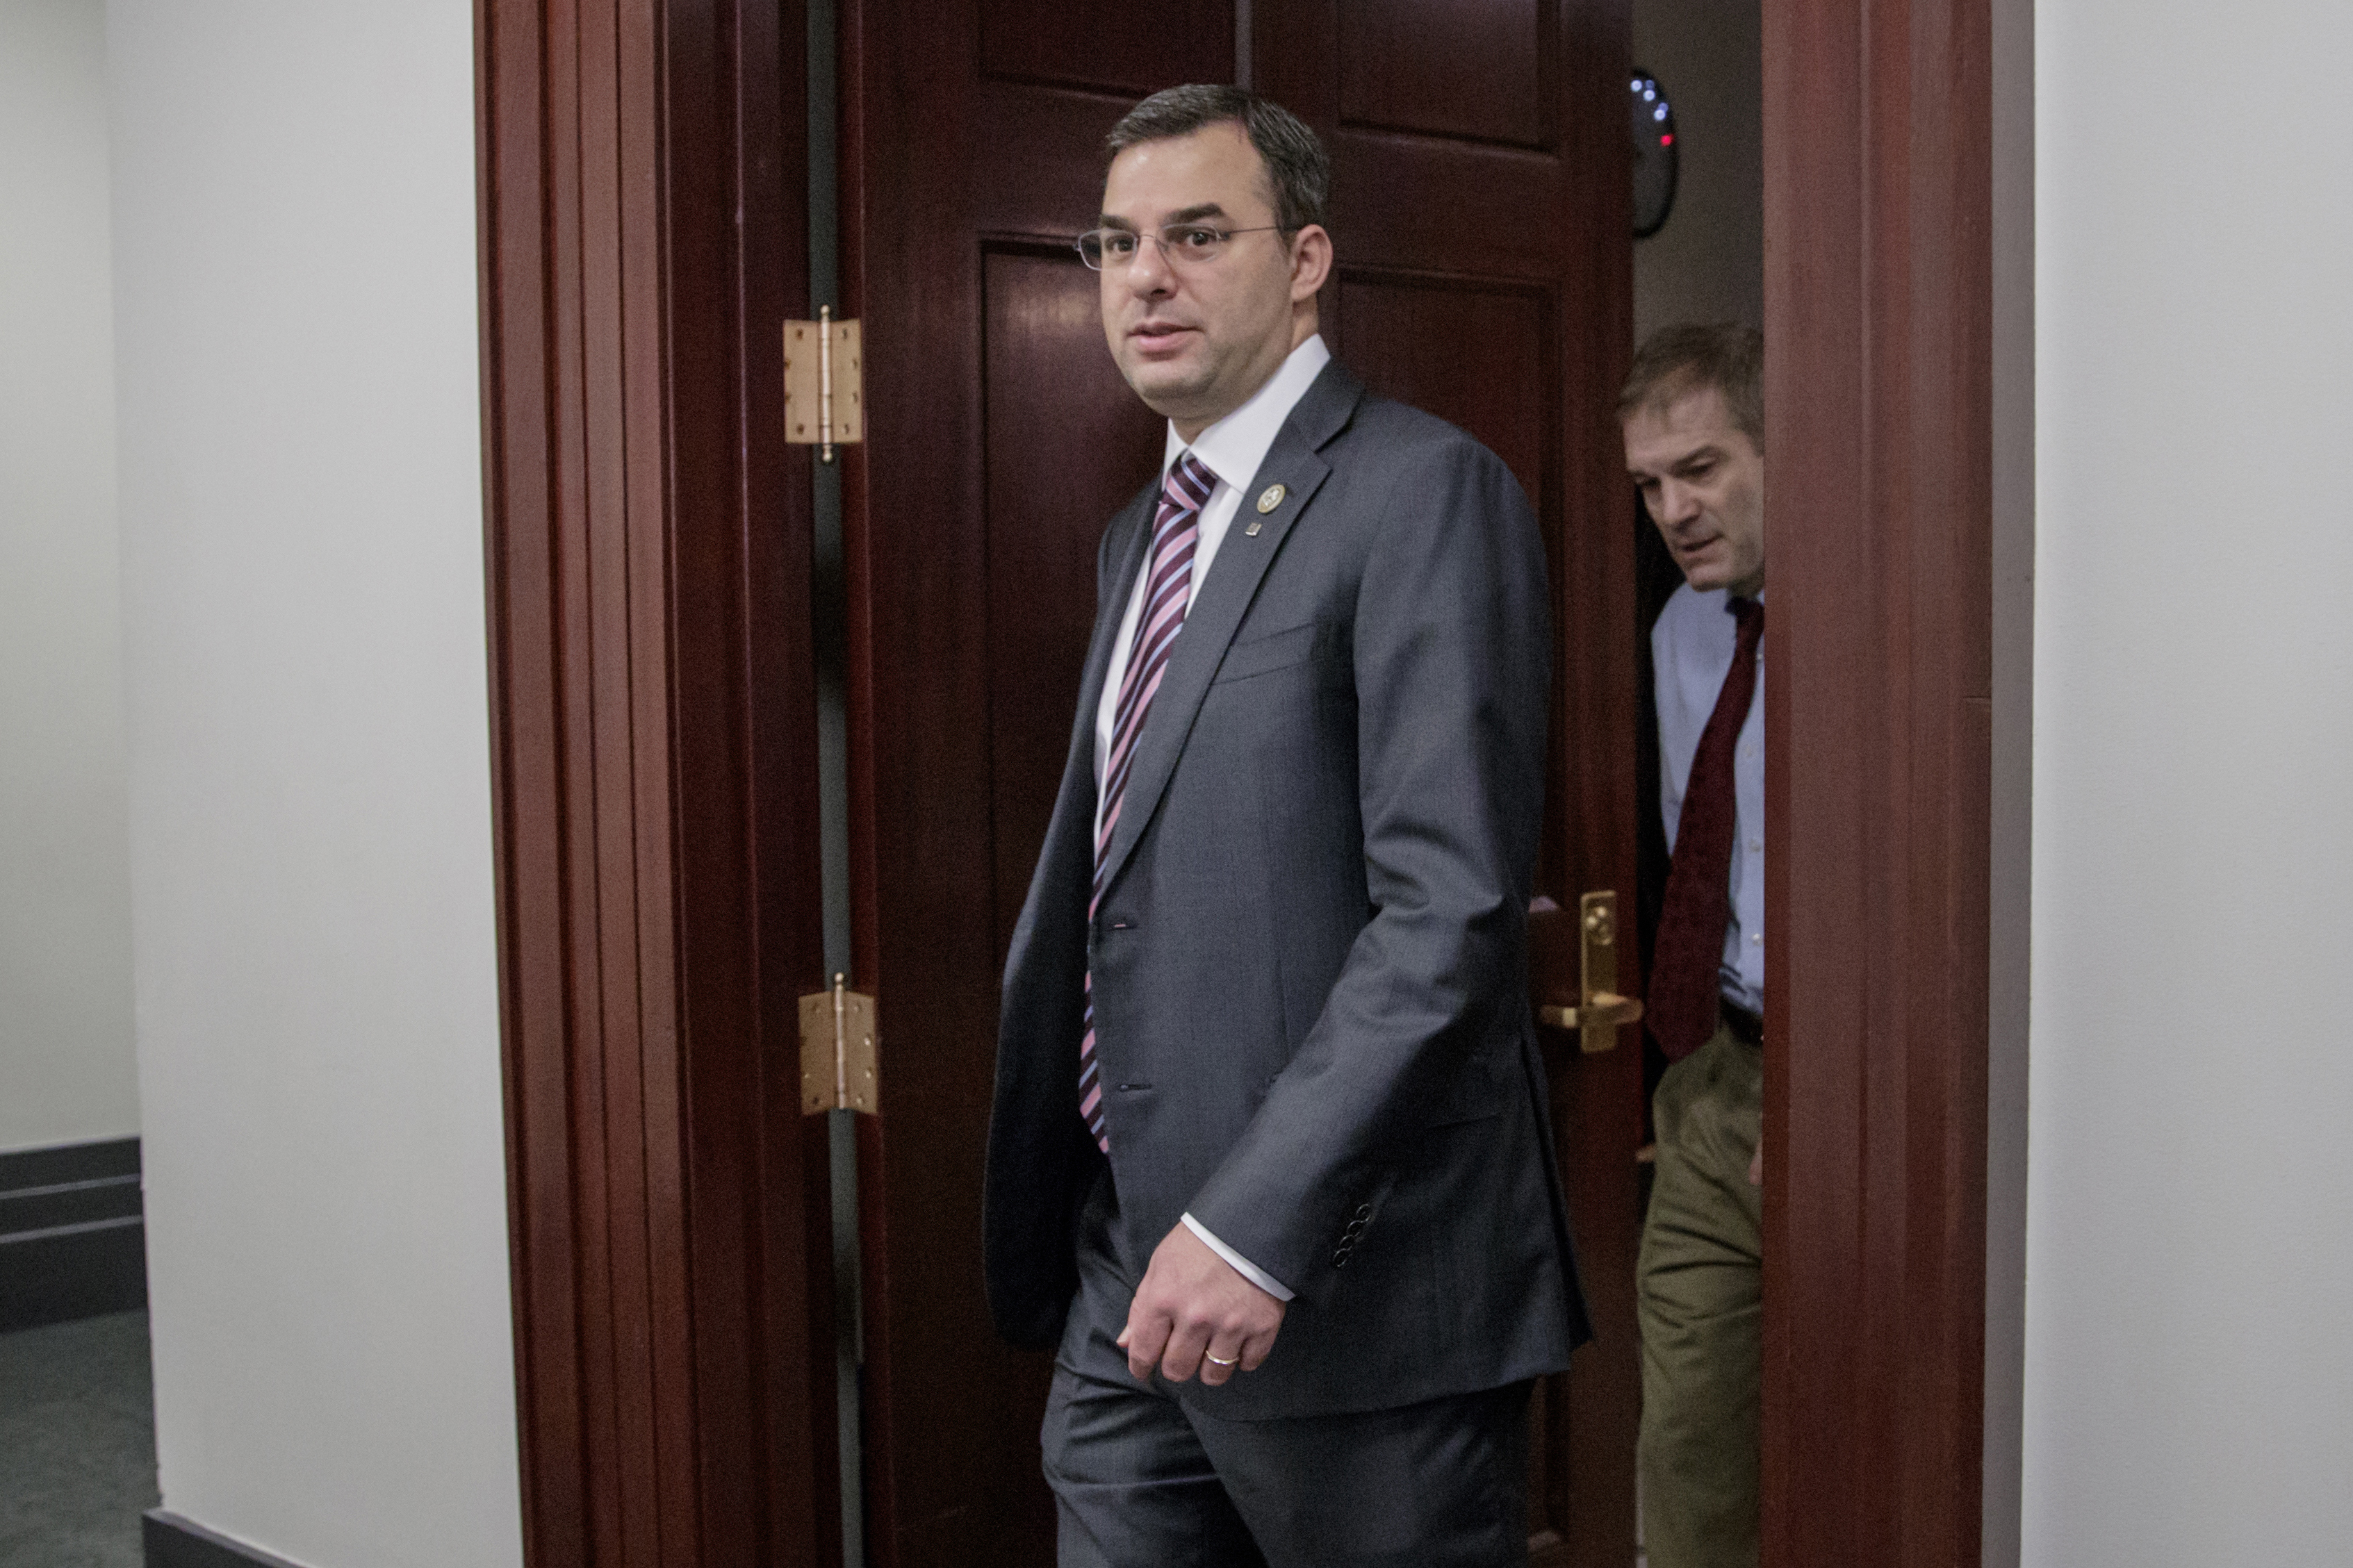 FILE - This March 28, 2017, file photo shows Rep. Justin Amash, R-Mich., followed by Rep. Jim Jordan, R-Ohio, leaving a closed-door strategy session on Capitol Hill in Washington. (AP Photo/J. Scott Applewhite, File)